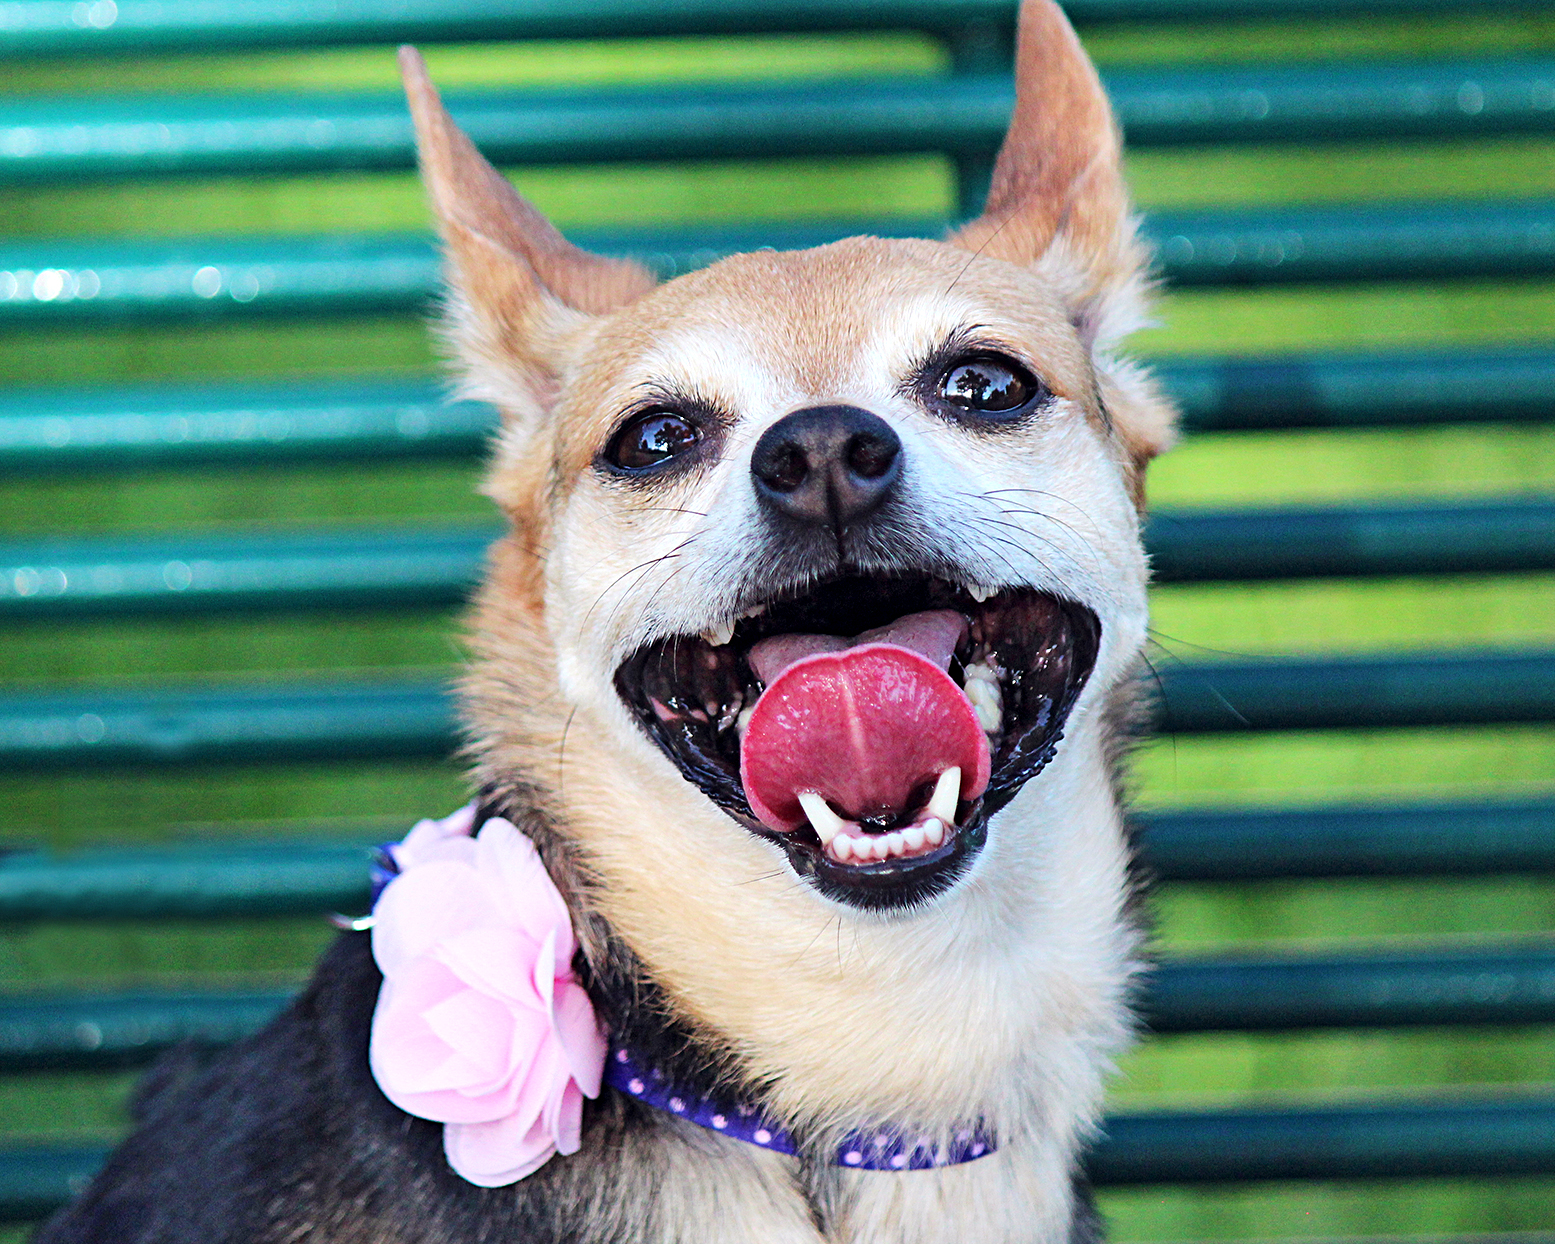 chorkie wearing a pink flower collar smiling at camera with her tongue out